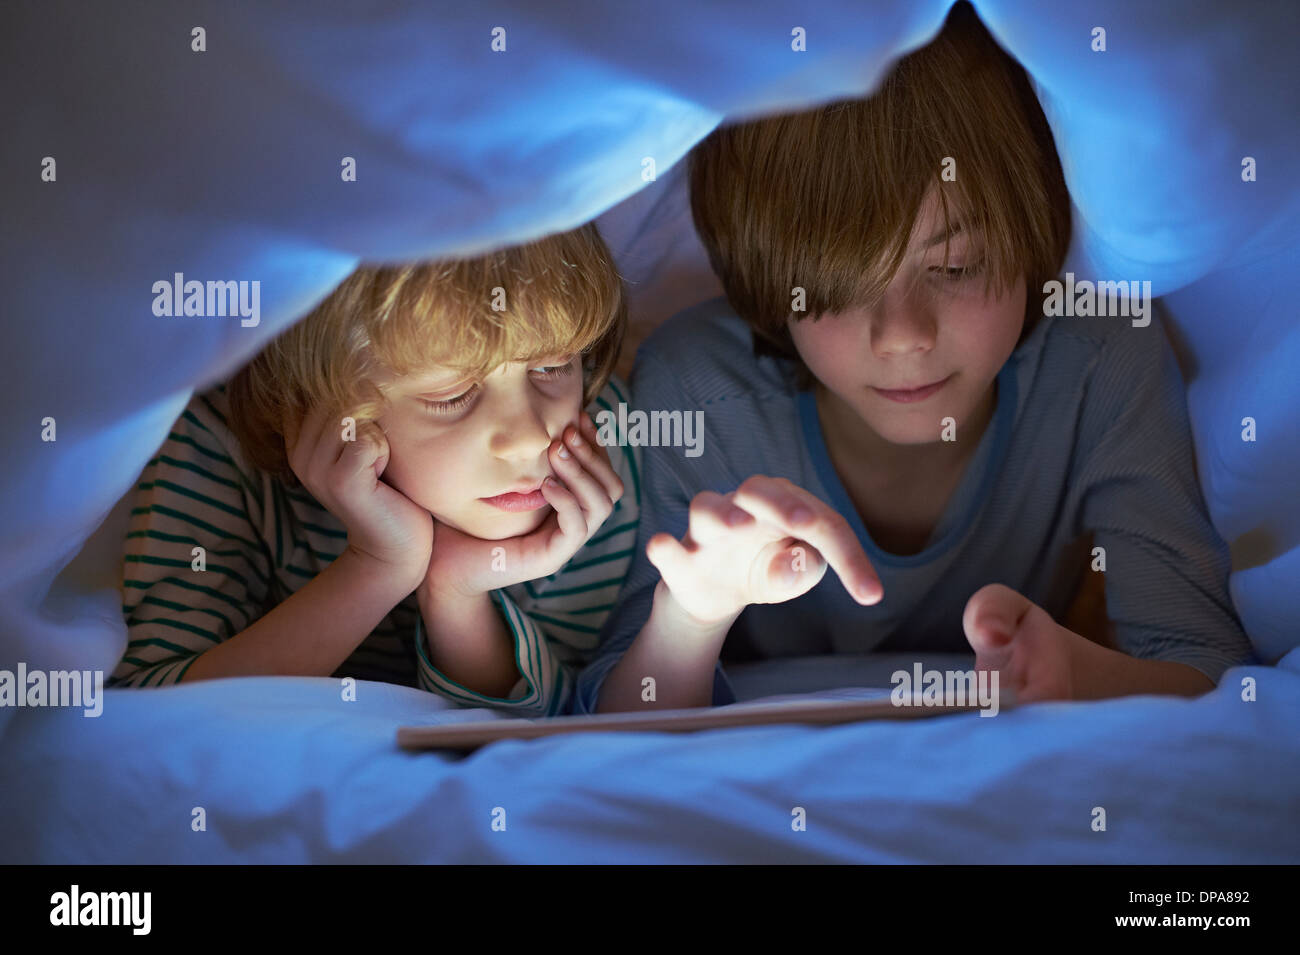 Brothers underneath duvet using digital tablet - Stock Image